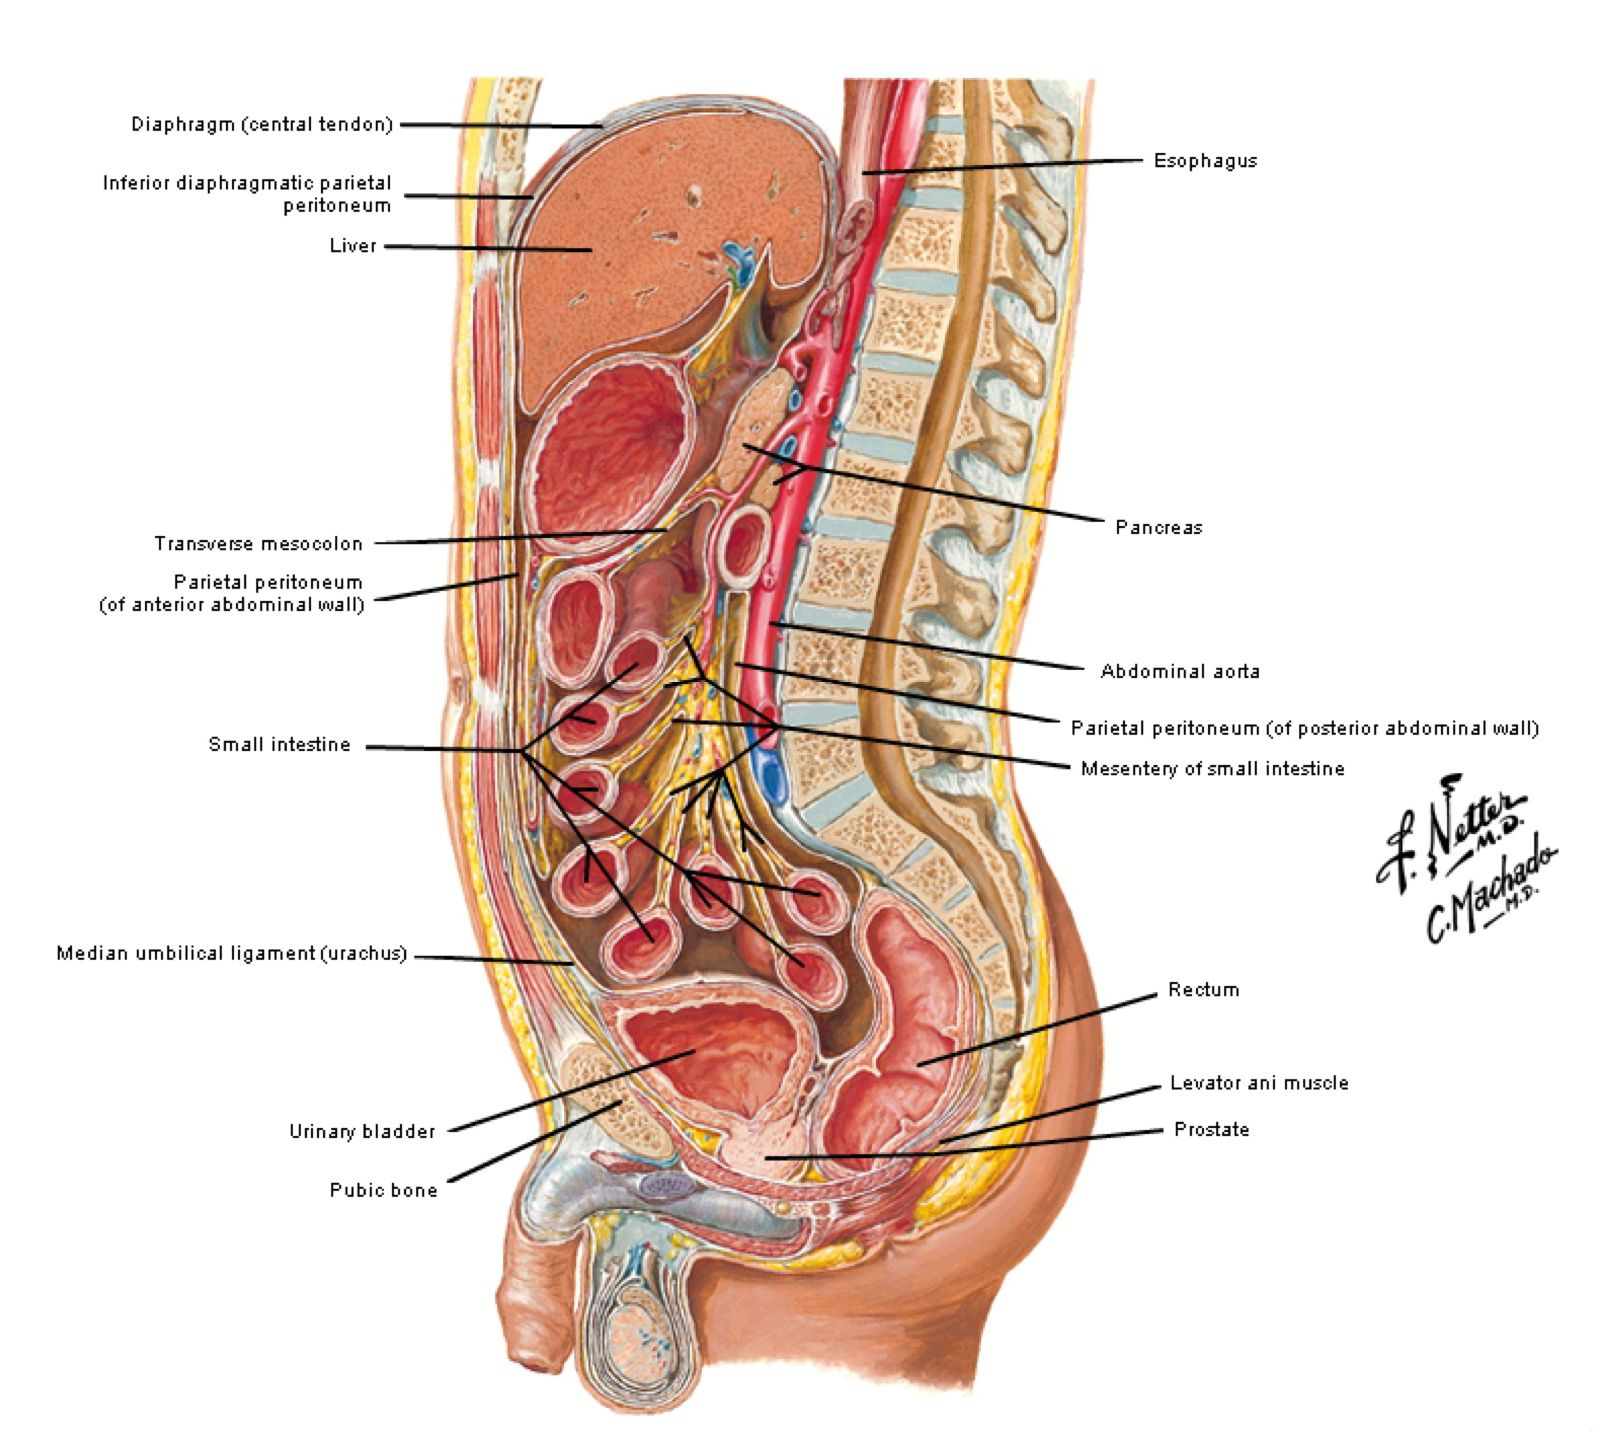 Human Abdomen Anatomy Places To Visit Pinterest Anatomy